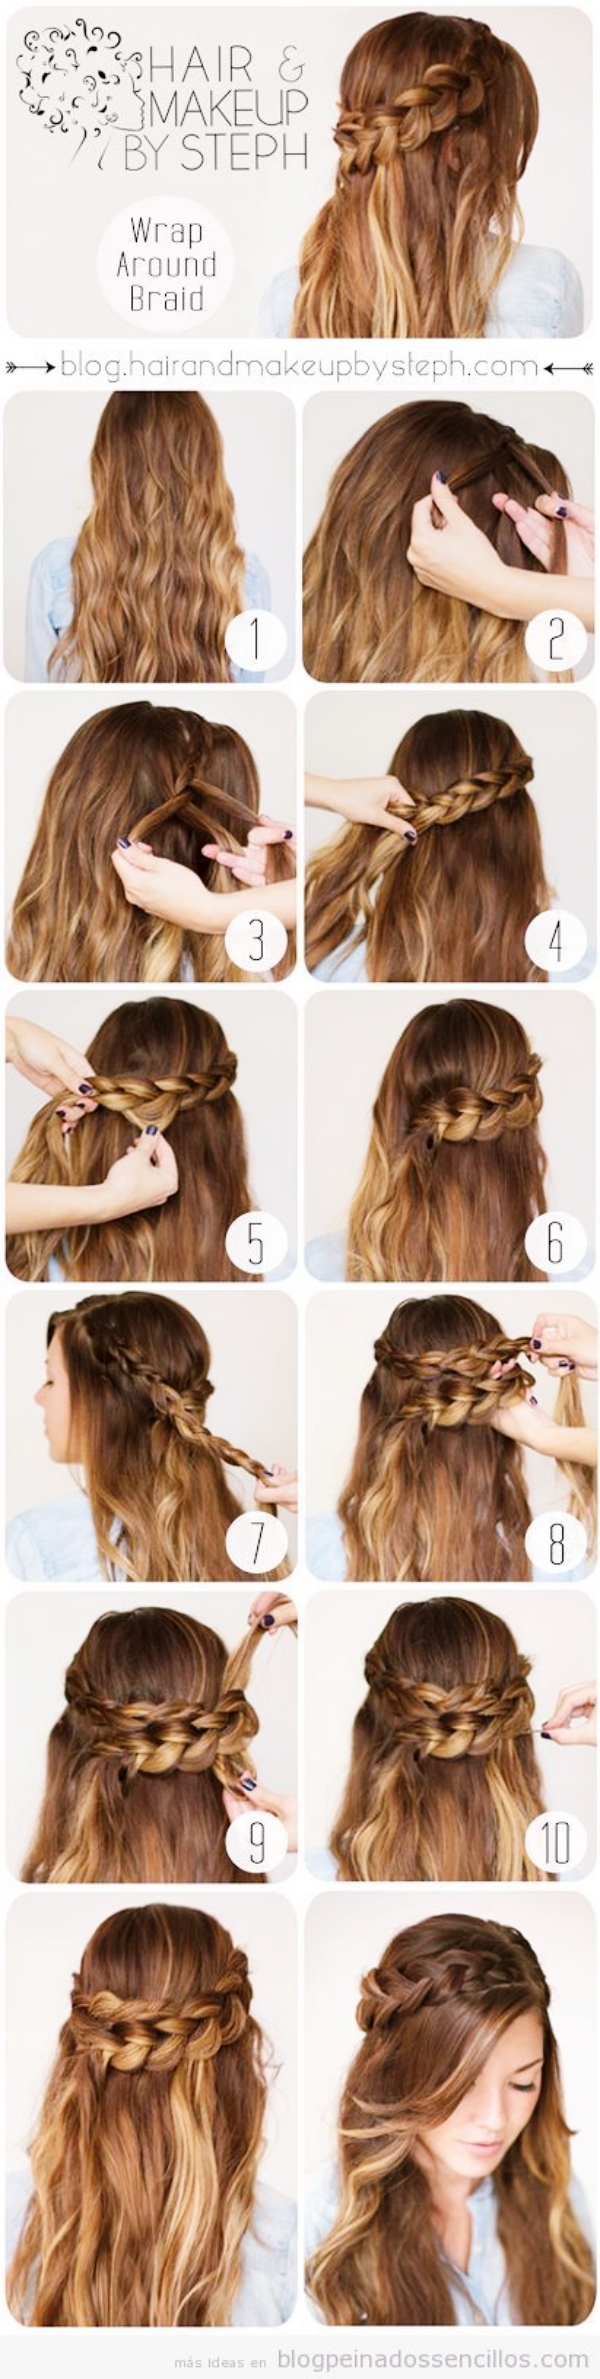 grec-déesse-demi-up-half-down -Hairstyles